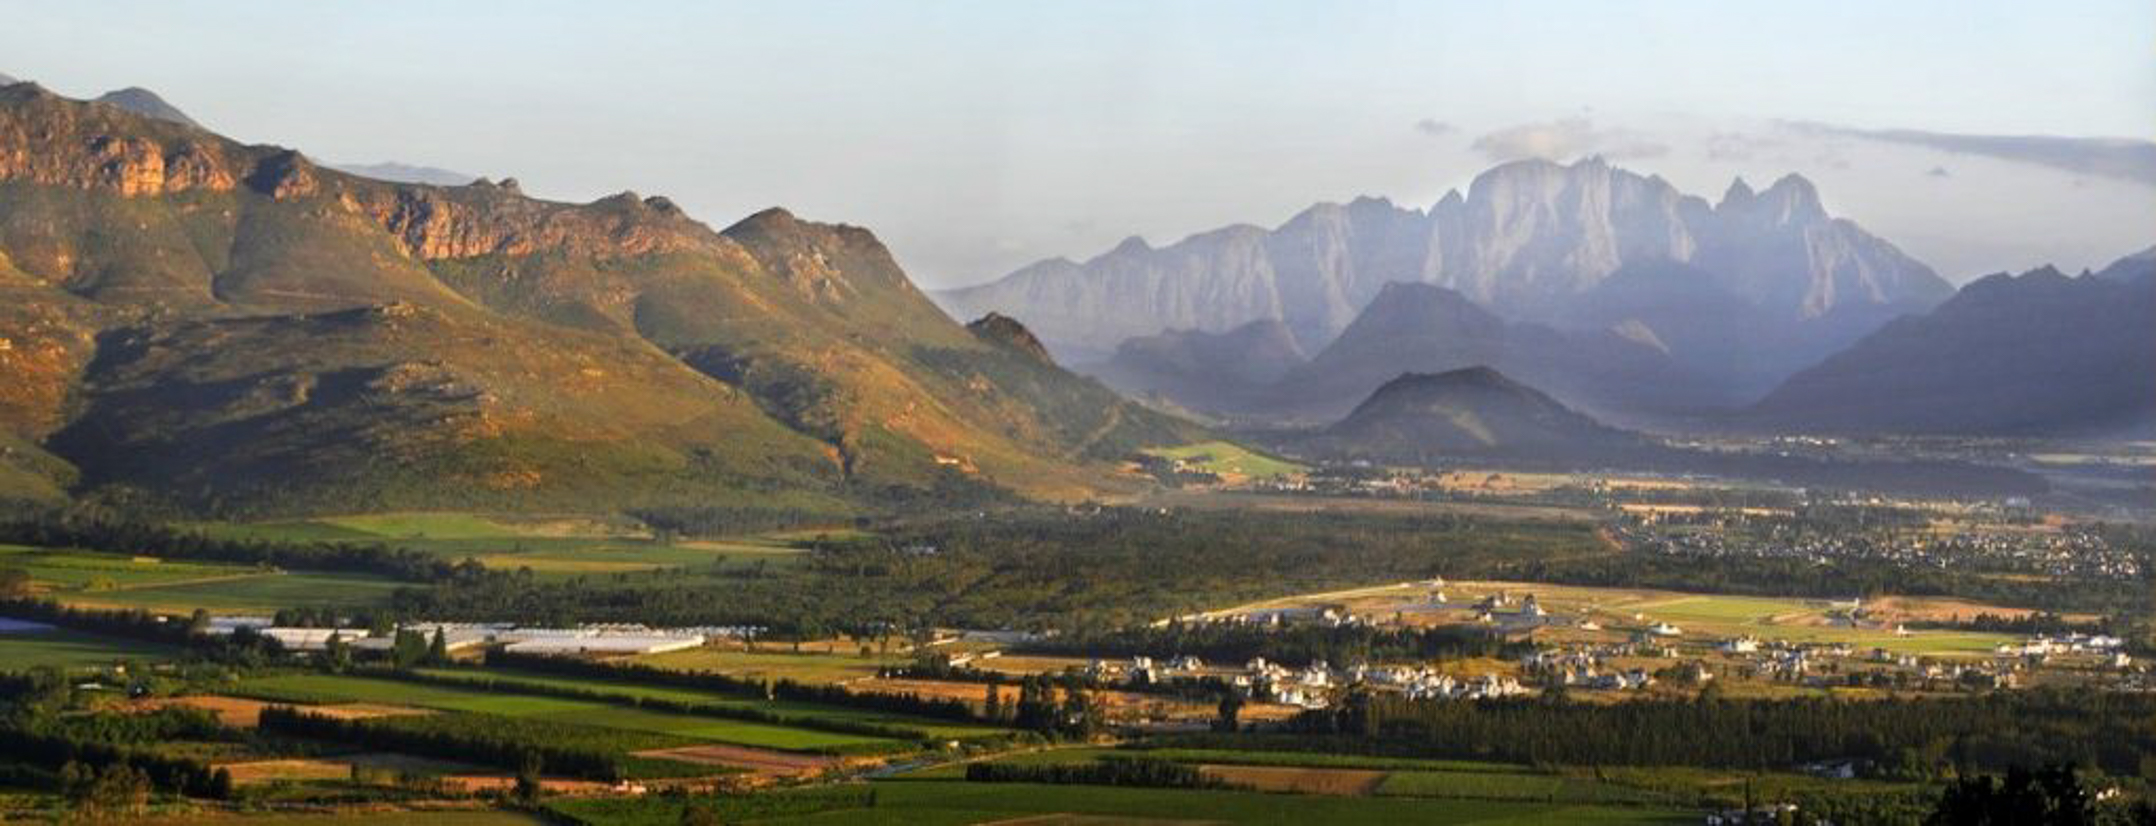 Exploring South Africa's Cape Winelands, South Africa